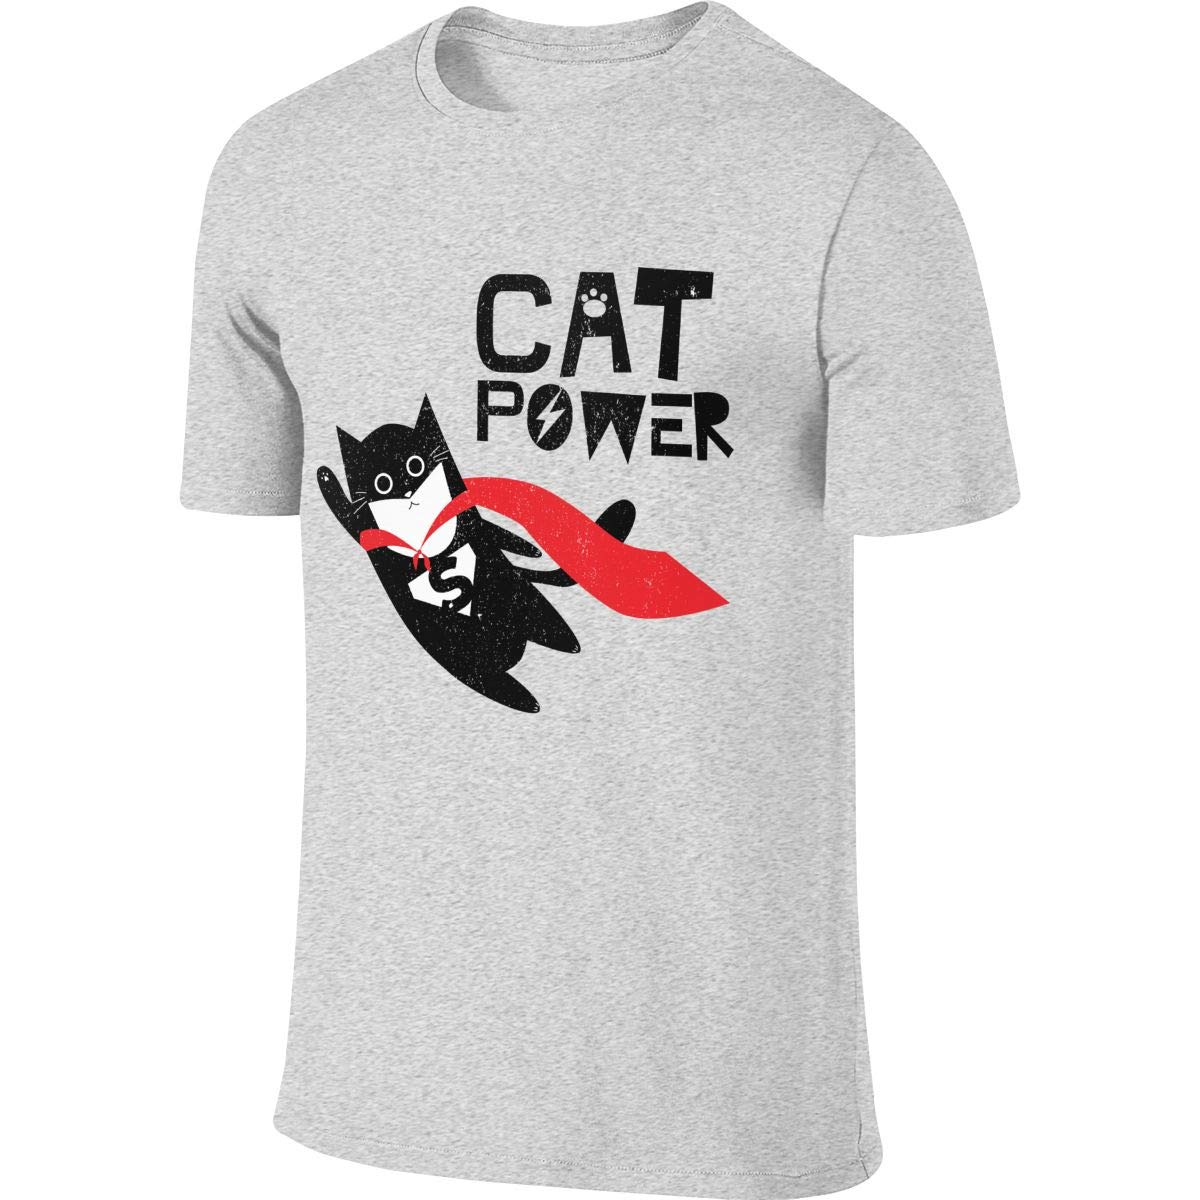 JUDSON Man Personalized Fashion Tee Funny Super Hero Cat T-Shirts